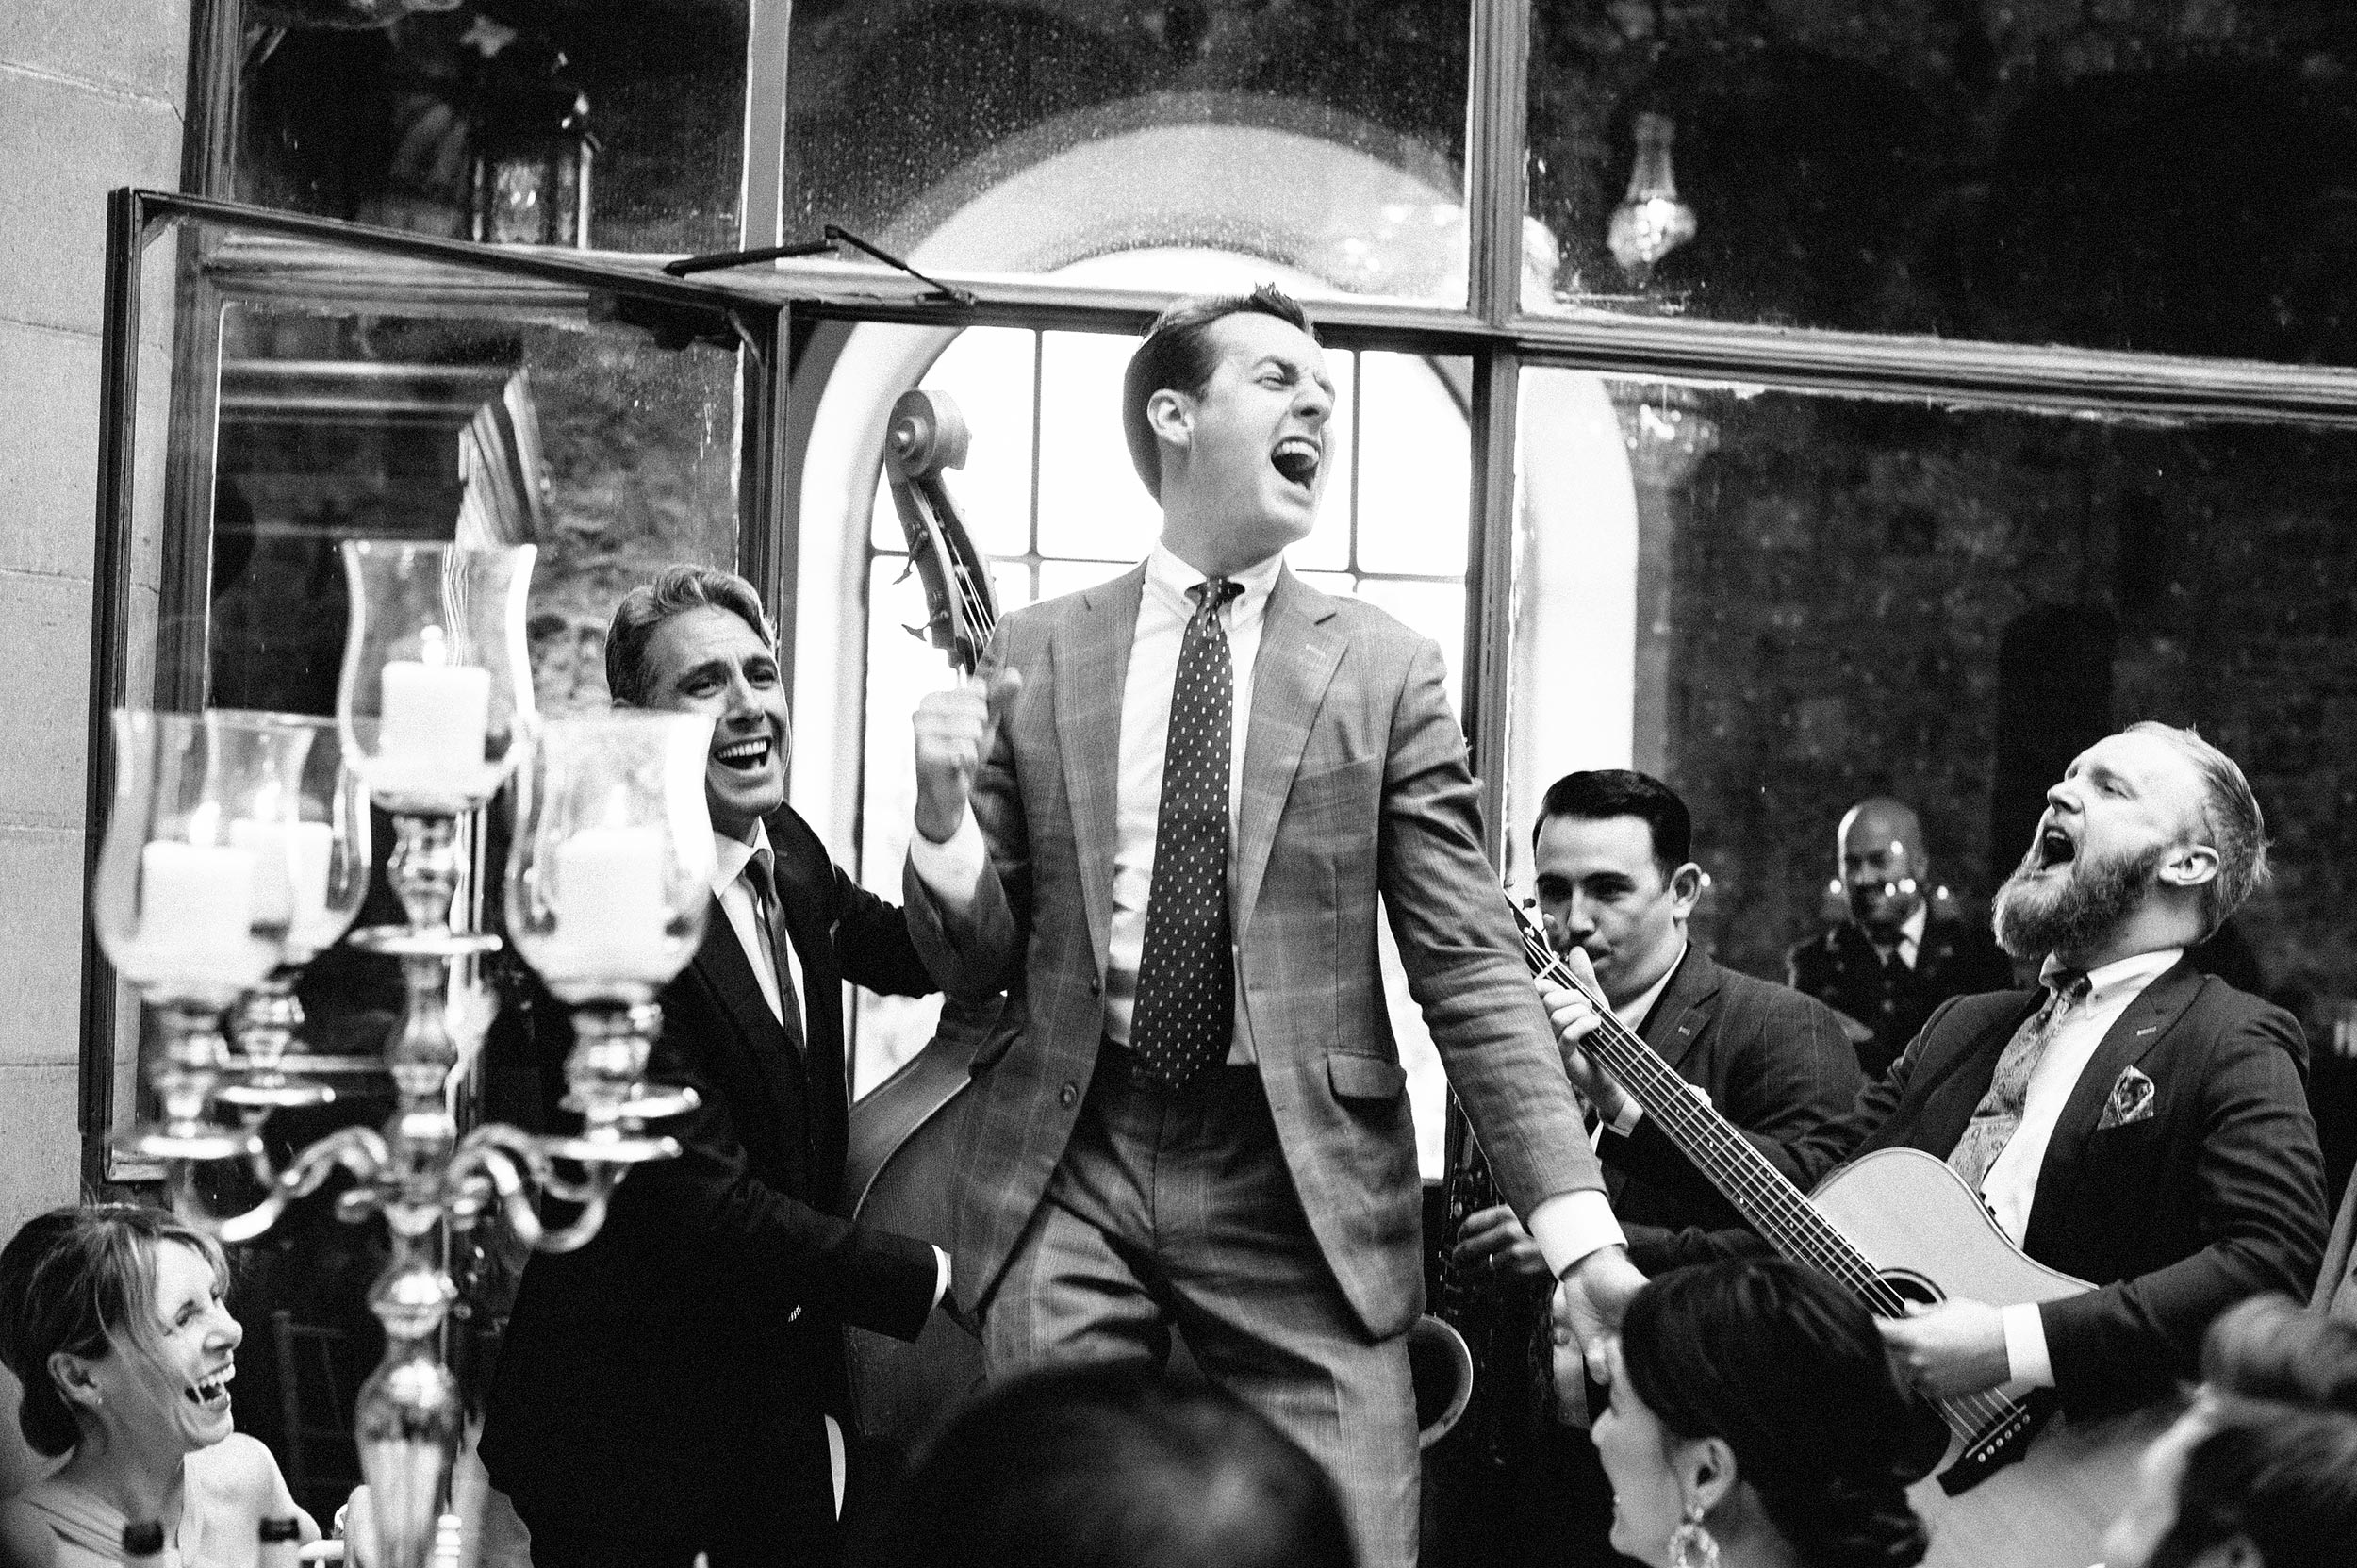 luxury-jazz-classic-rock-band-the-london-essentials-candid-black-and-white-wedding-photography-by-Alessandro-Avenali.jpg